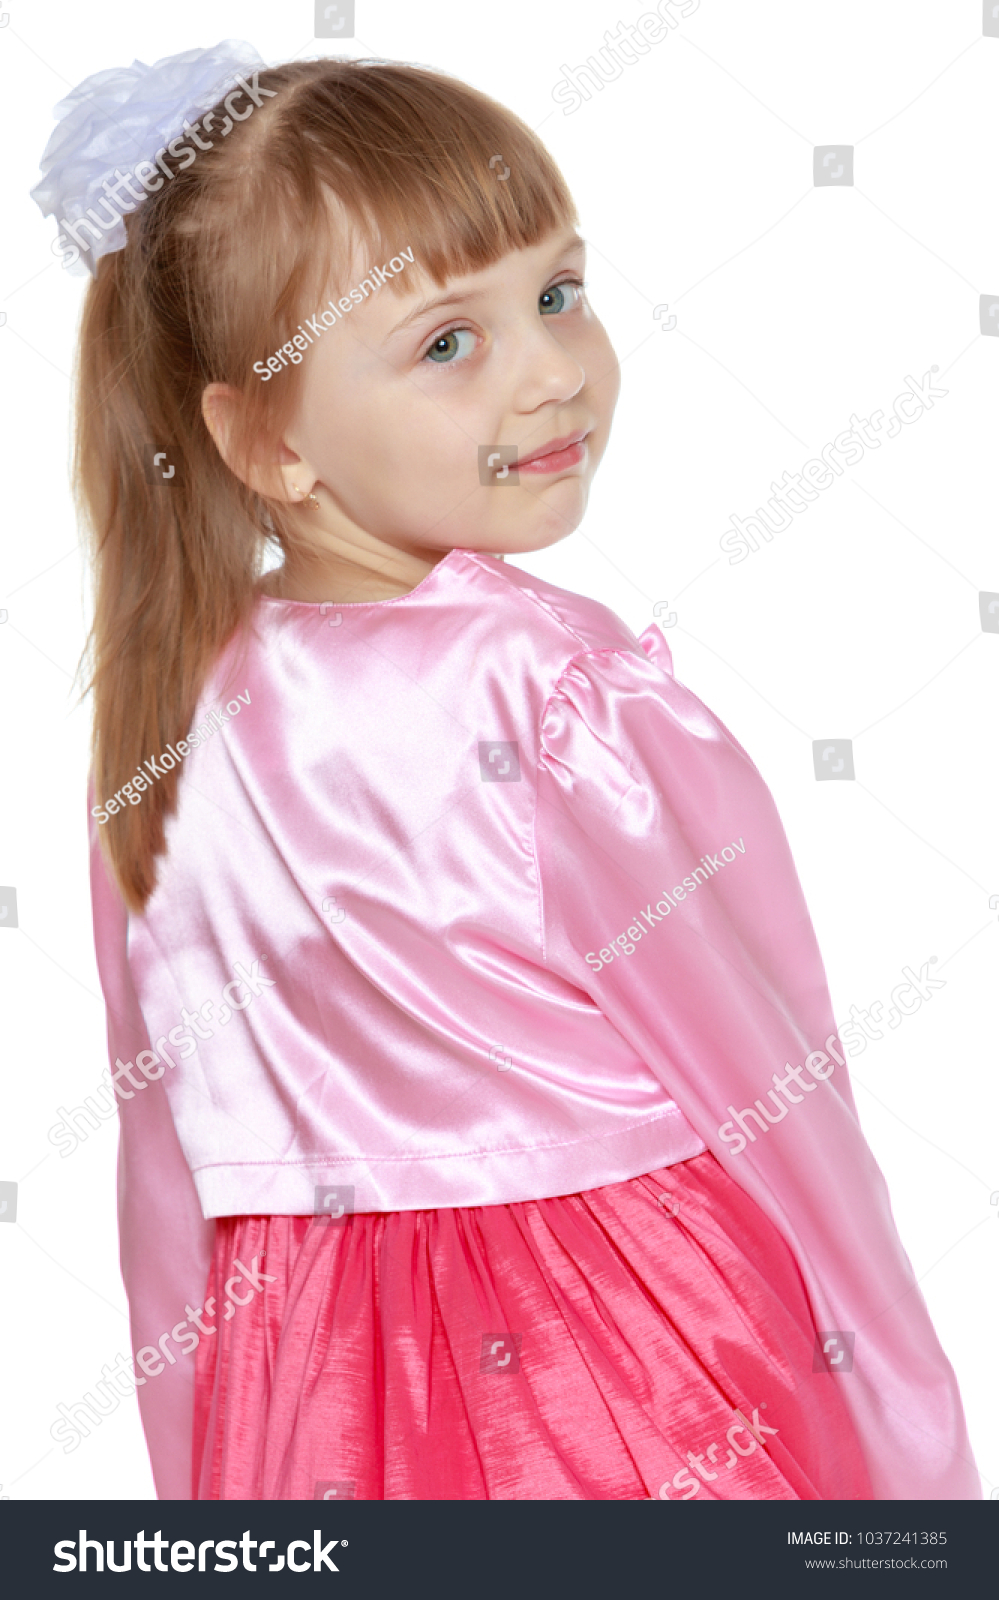 6f3298c4fc4 Beautiful Little Girl 6 Years Old Stock Photo (Edit Now) 1037241385 ...